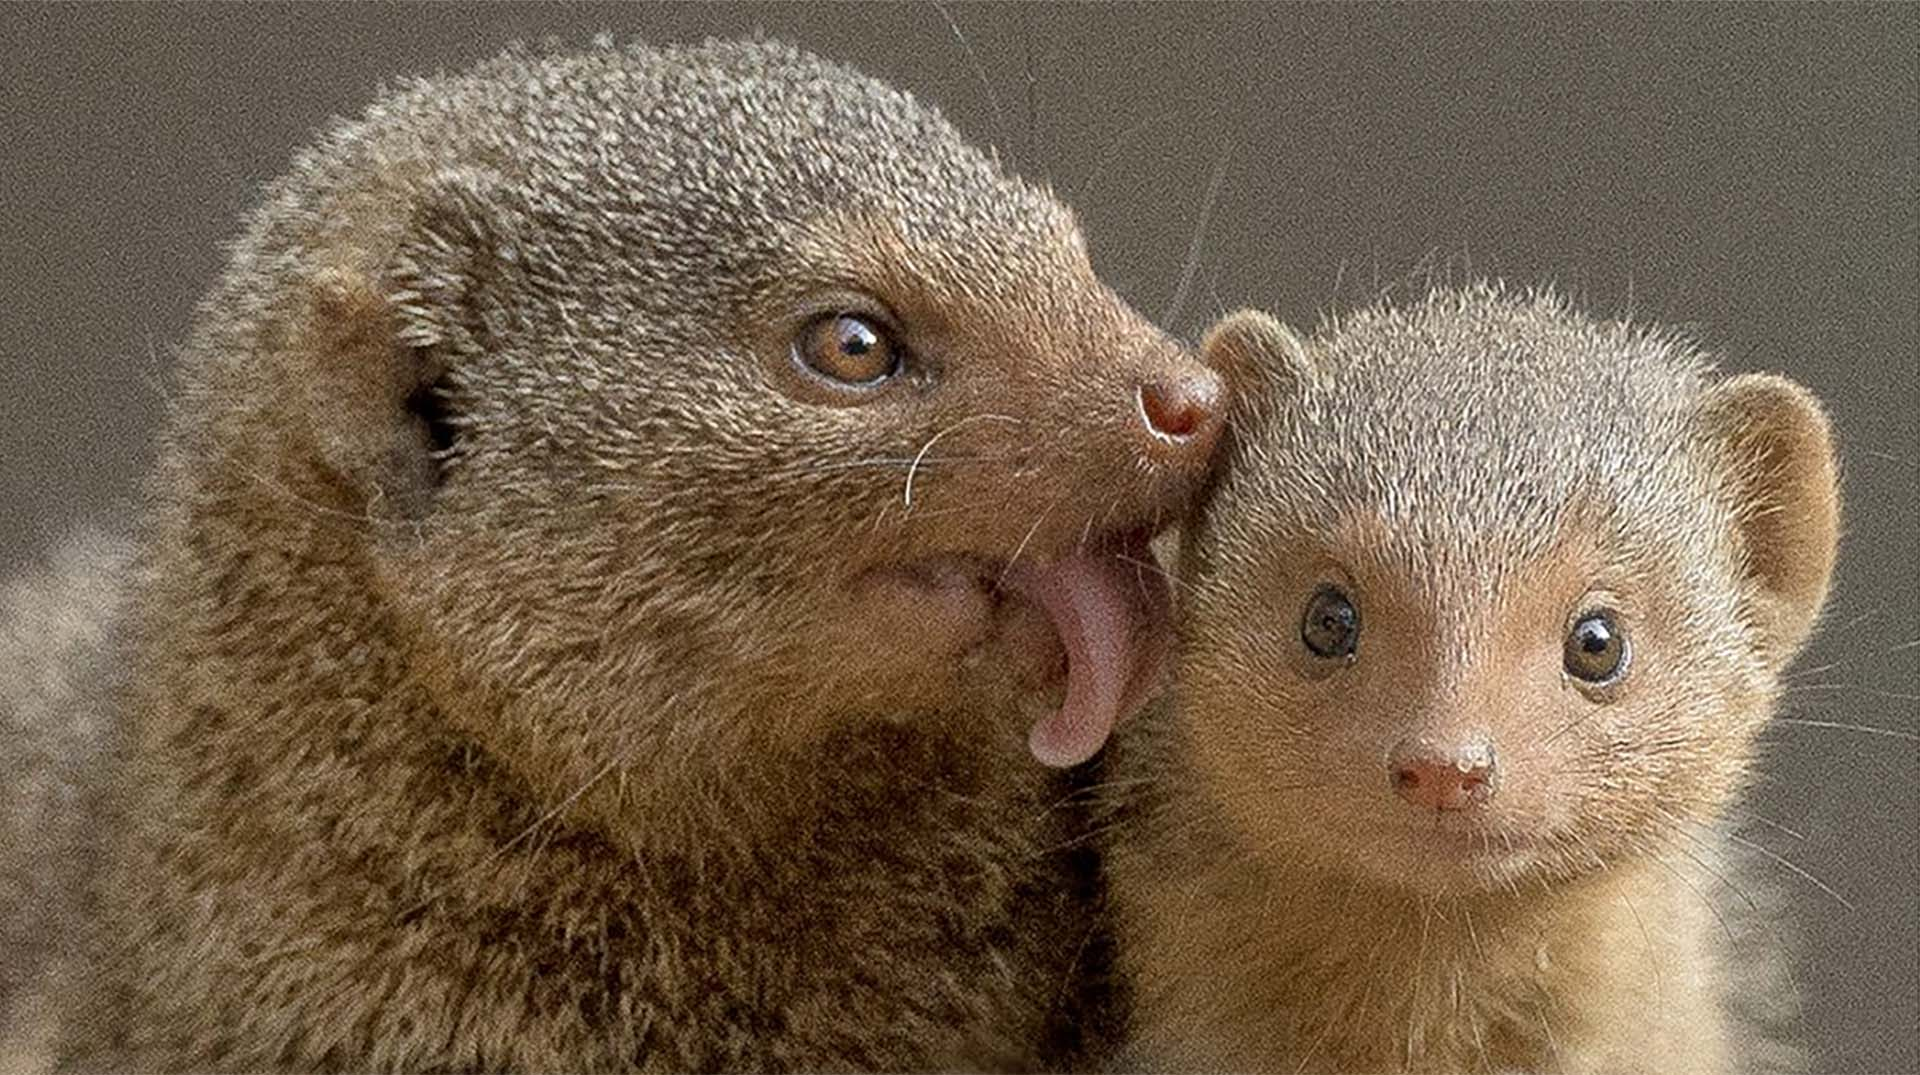 Dwarf mongoose mom and baby